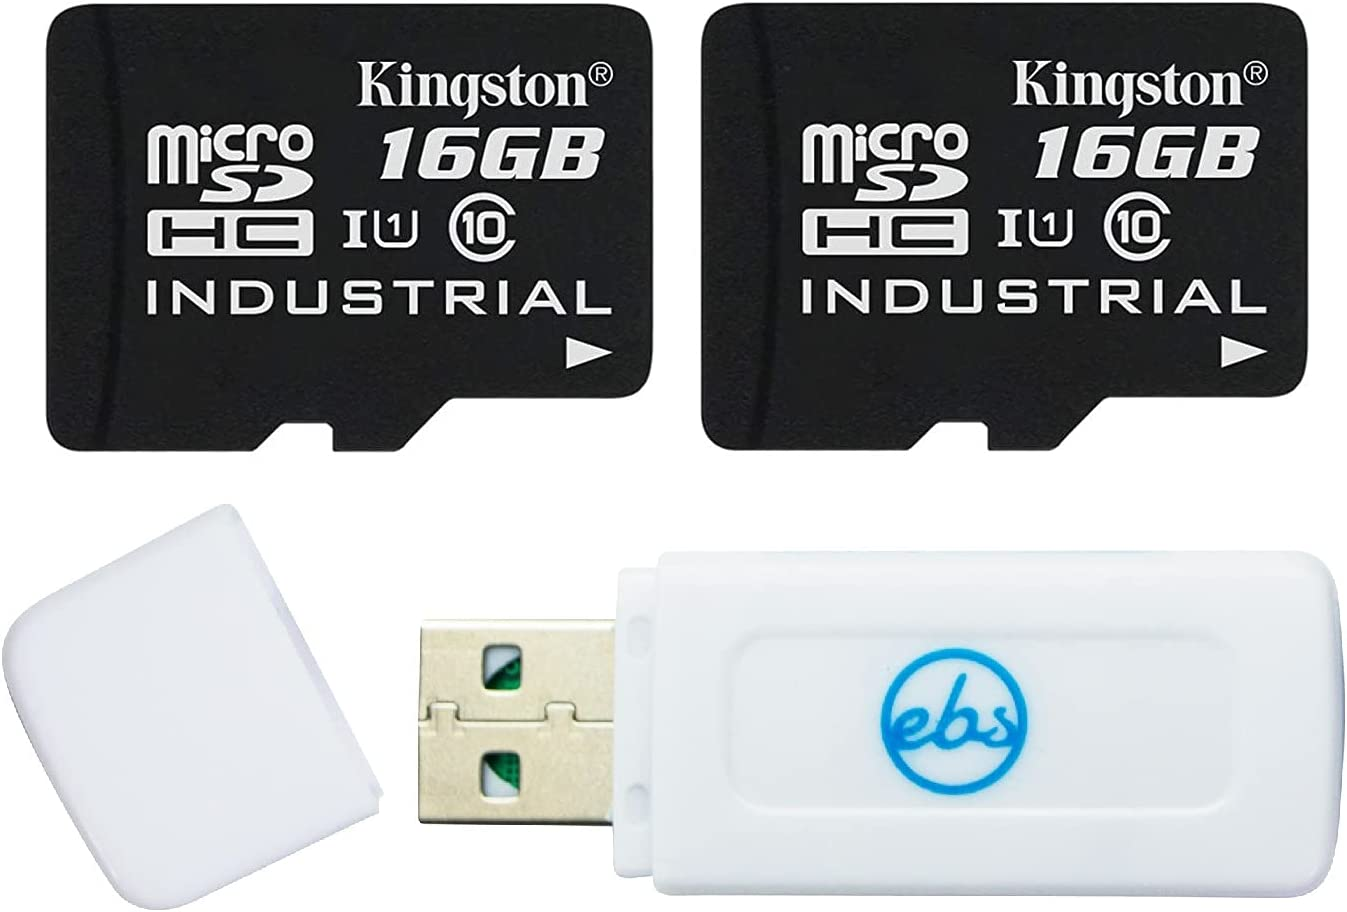 Kingston 16GB MicroSD Industrial Grade Card (2 Pack) with Adapter Class 10 U1 (SDCIT/16GB) Bundle with 1 Everything But Stromboli Memory Card Reader